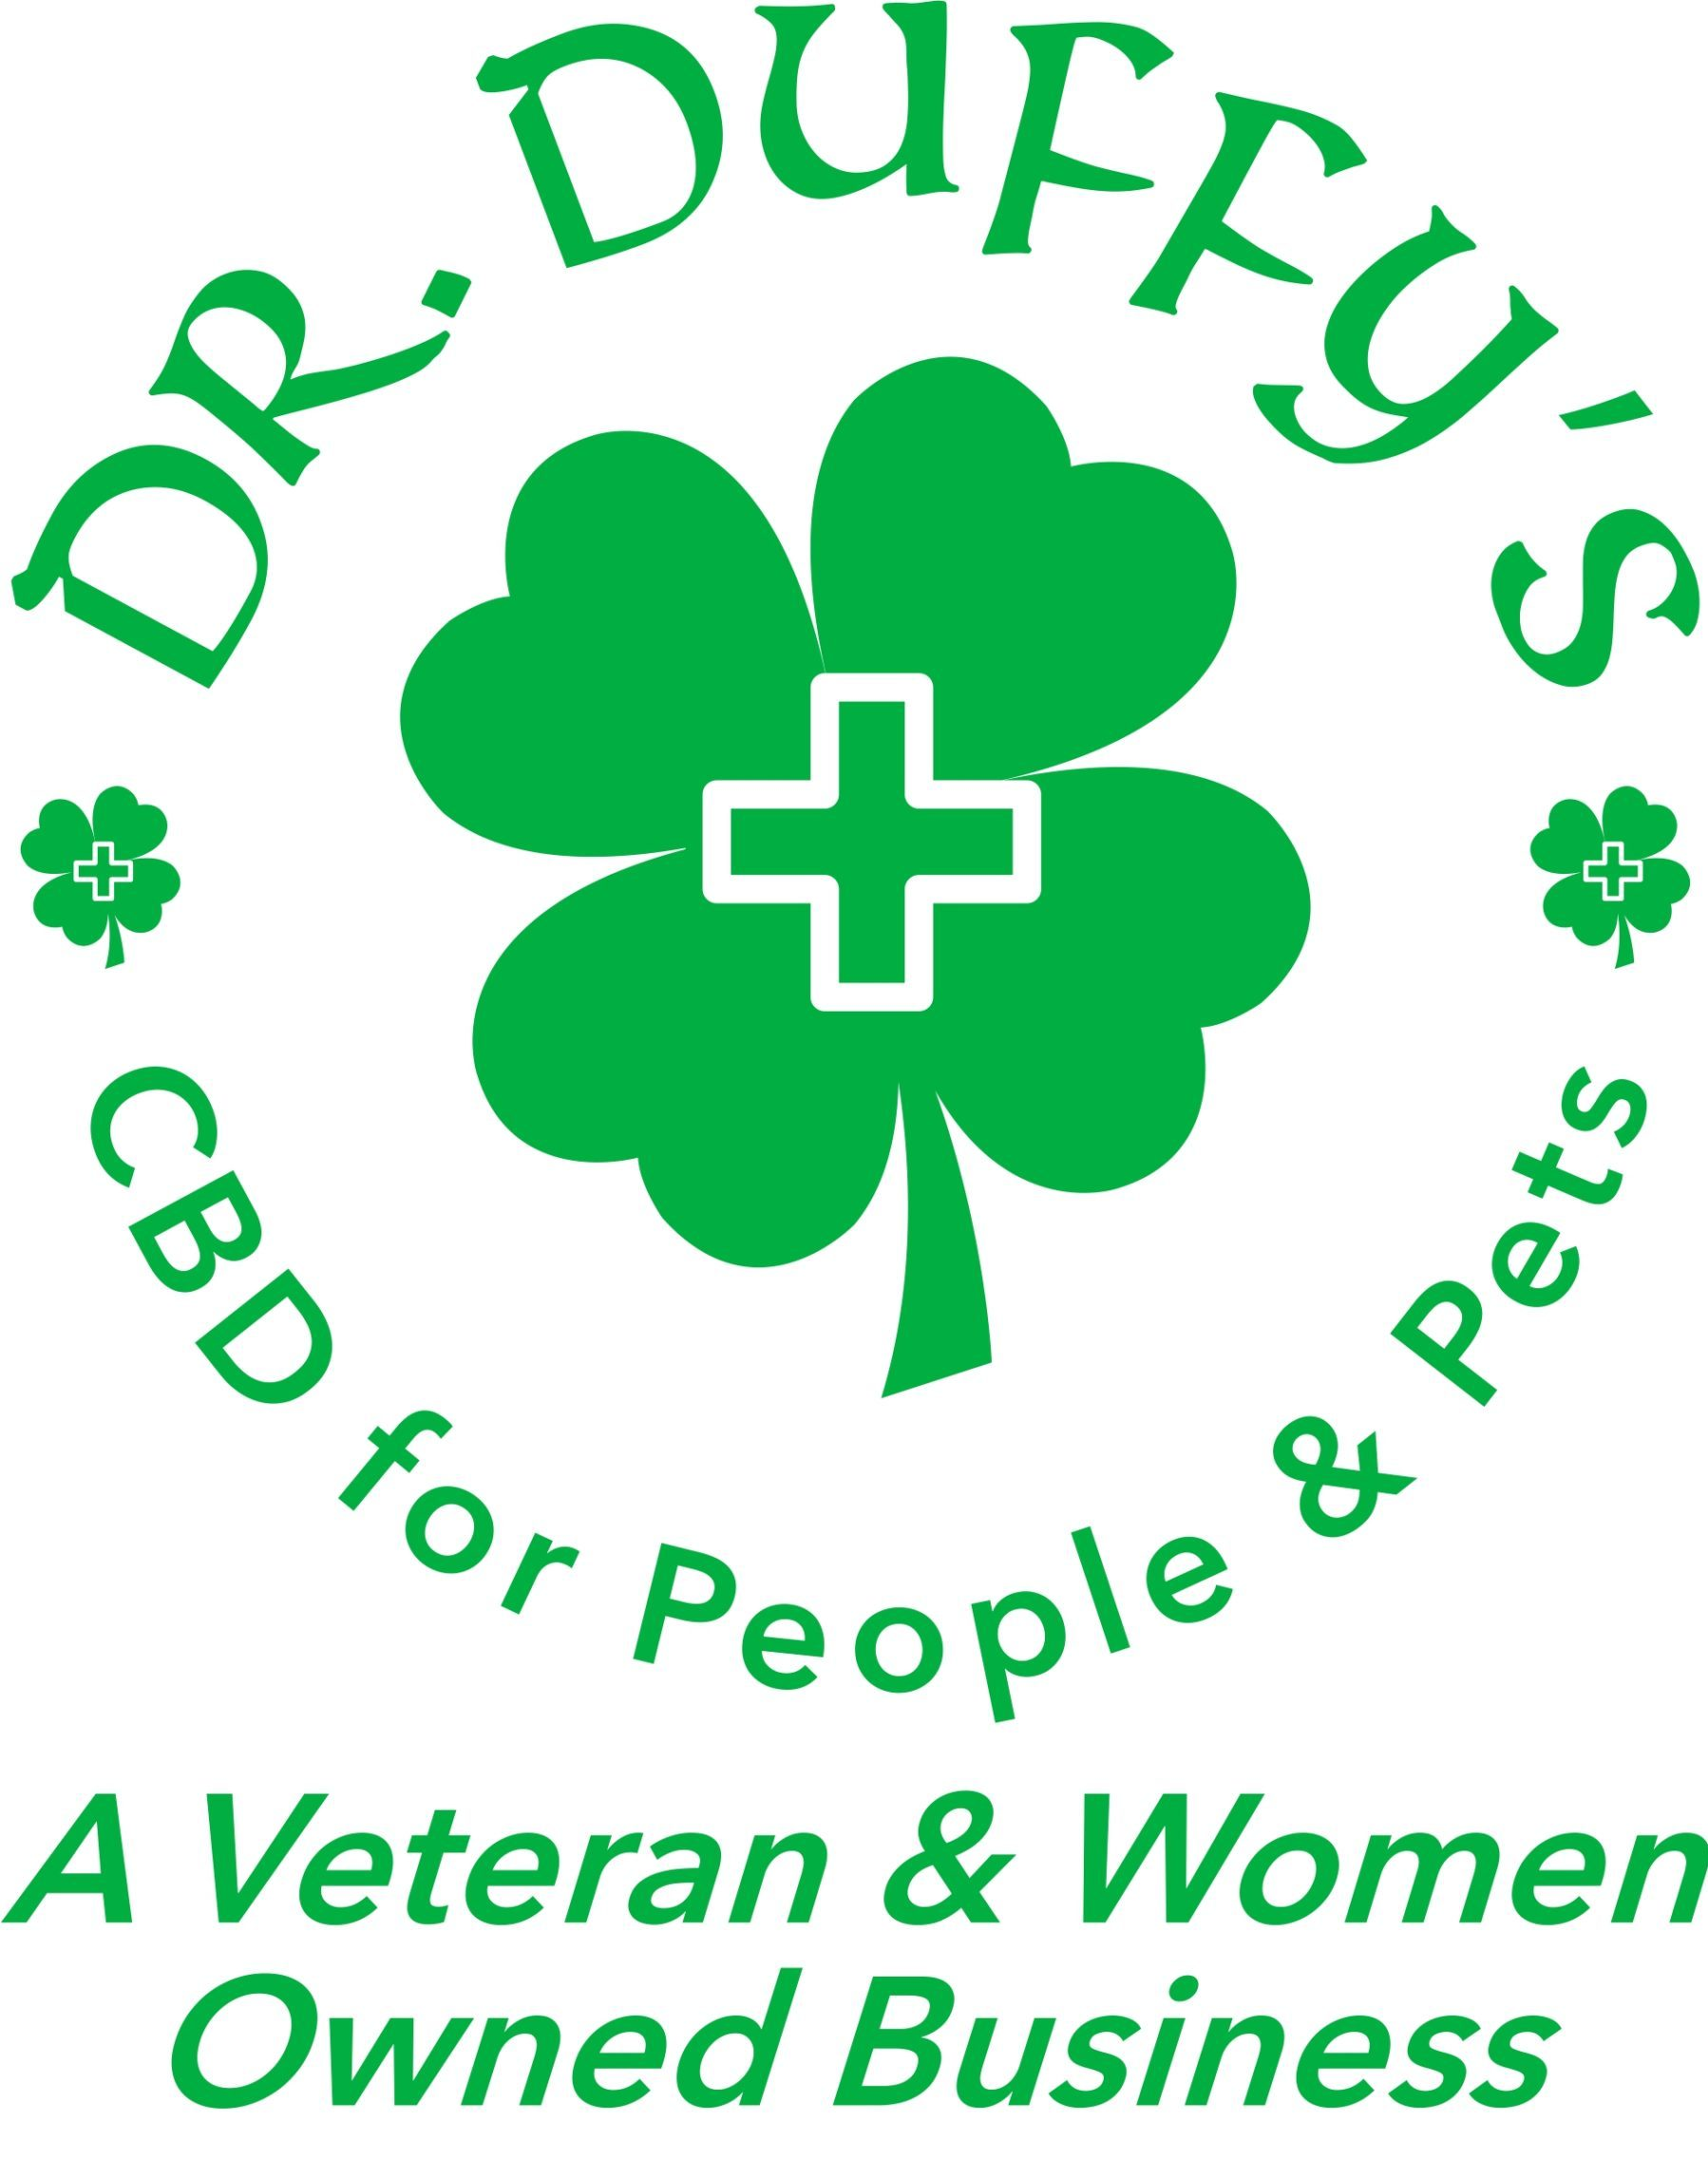 Dr Duffys CBD for People & Pets